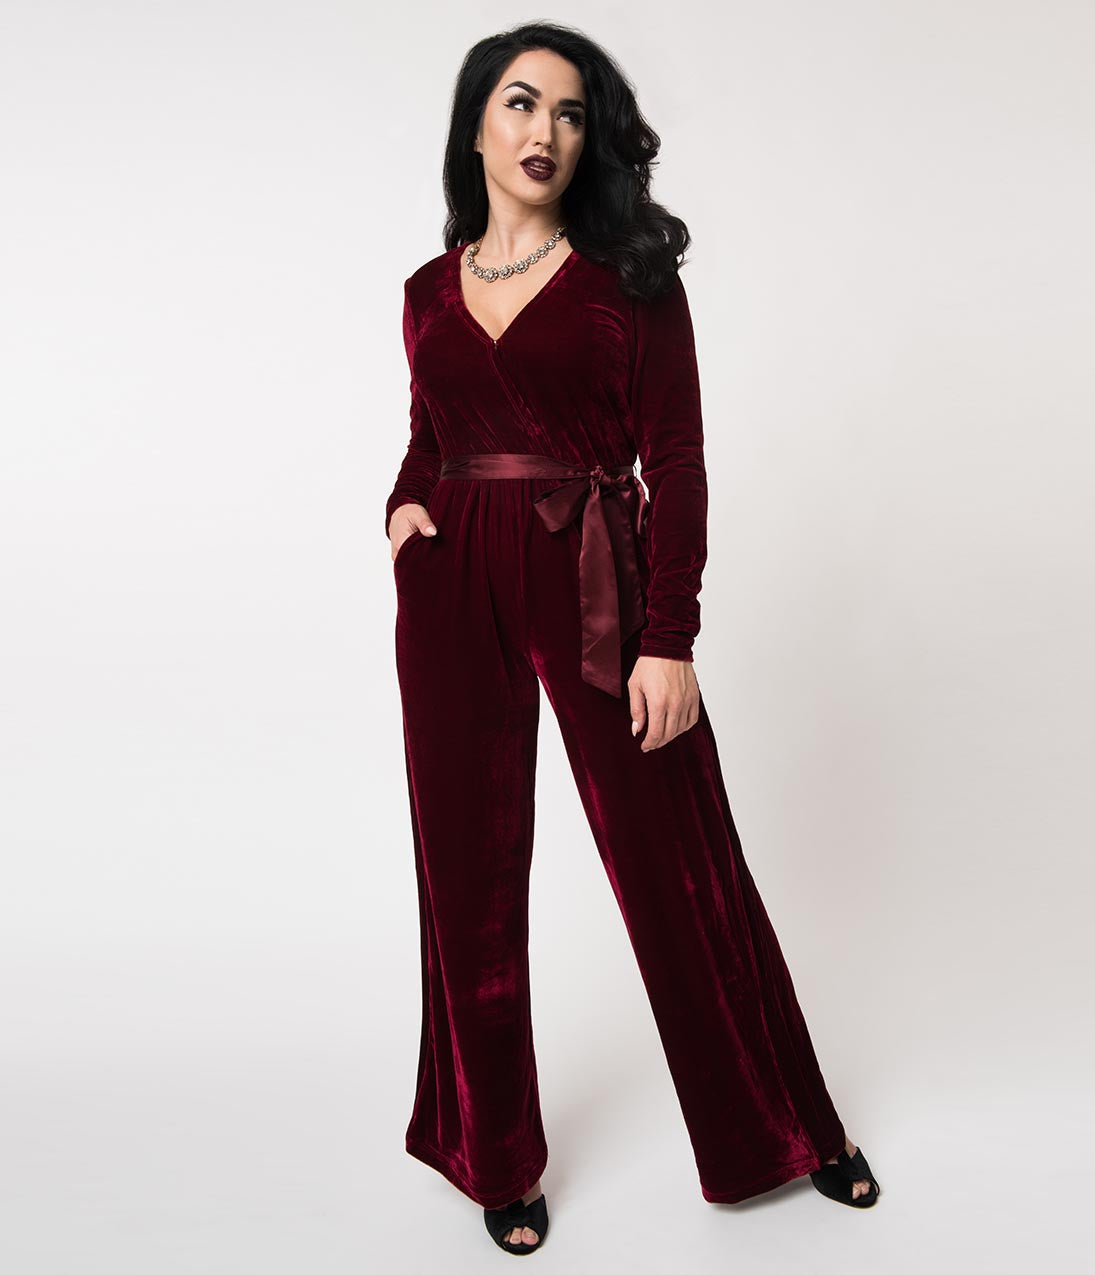 Vintage High Waisted Trousers, Sailor Pants, Jeans 1970S Burgundy Red Velvet Satin Tie Long Sleeve Jumpsuit $51.00 AT vintagedancer.com